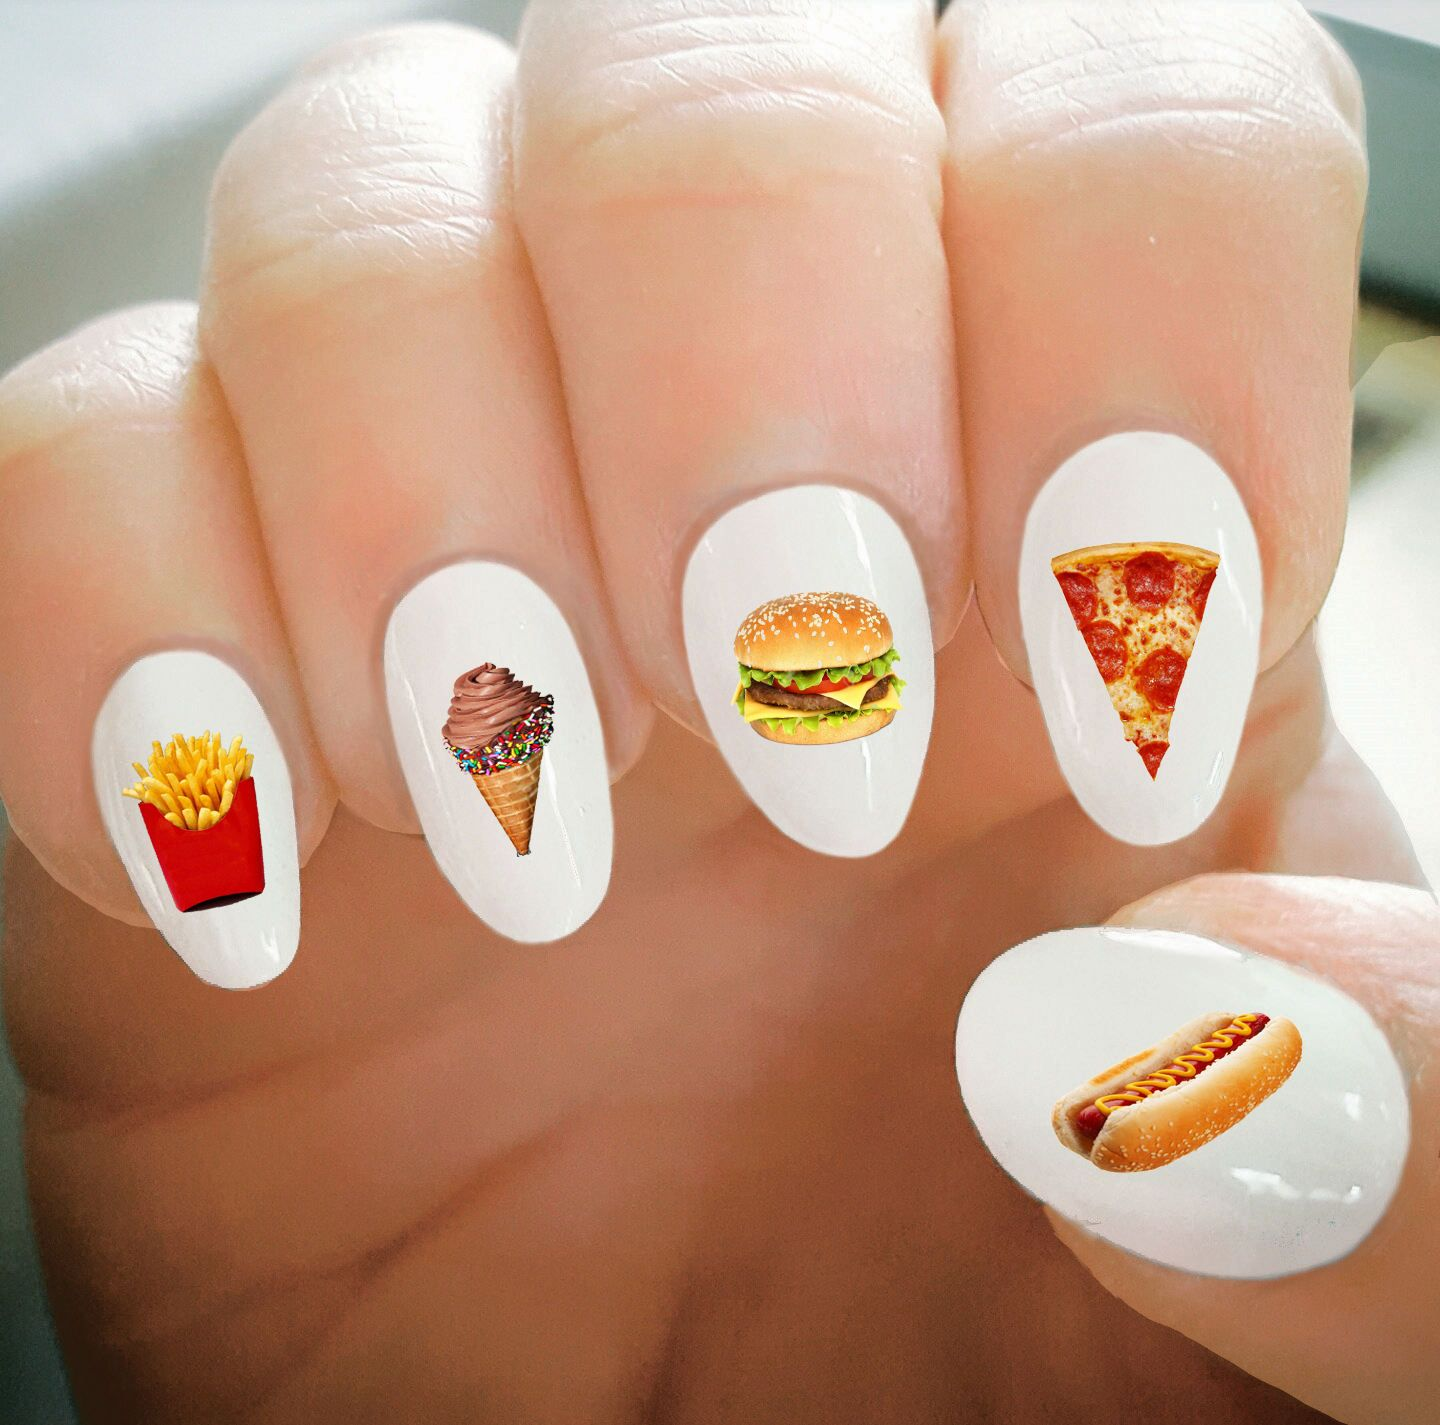 Nail Decals, Fast Food Decals, Water Transfer Nail Decals,Nail ...